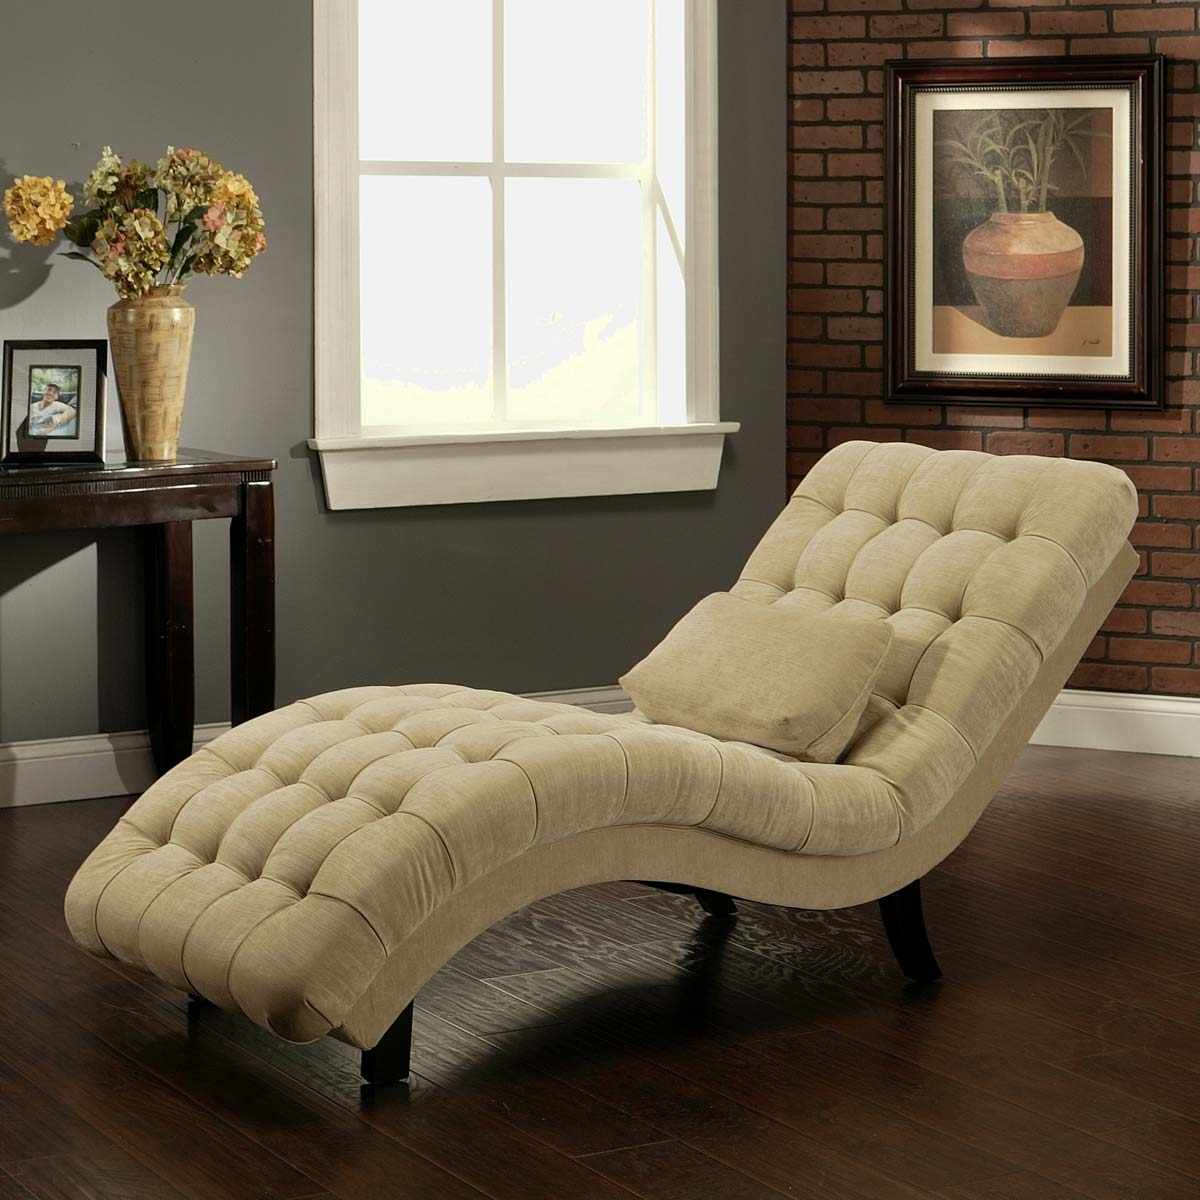 Lounge Chairs For Bedroom You Ll Love In 2021 Visualhunt